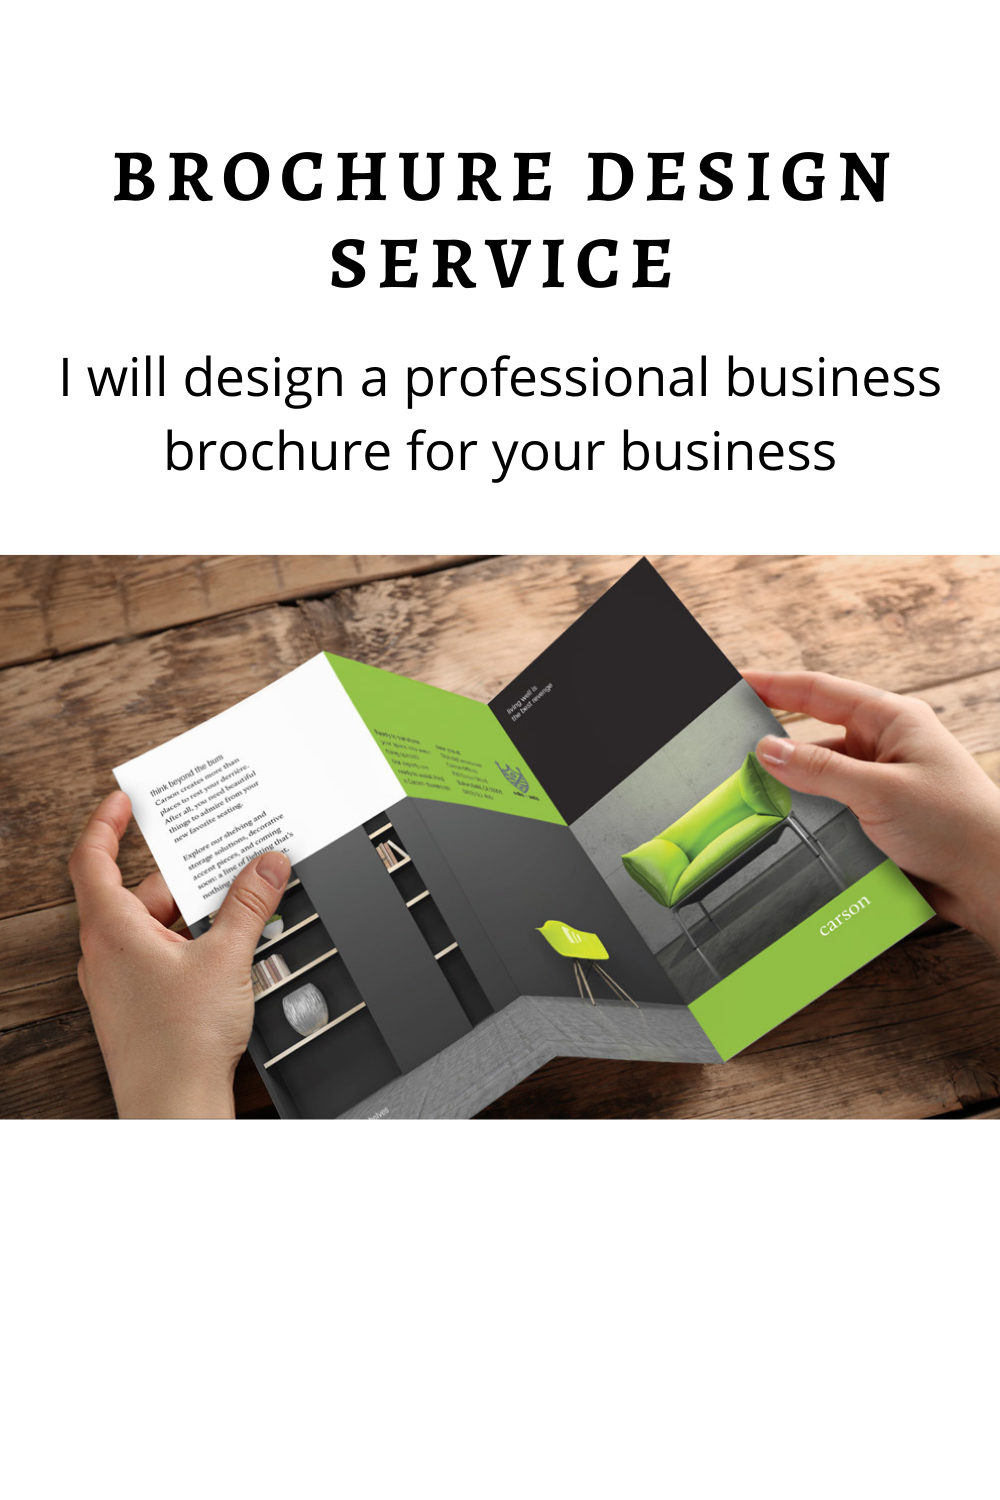 How To Create A Digital Brochure For Free How To Make A Brochure Diy How To Create A E Brochu How To Make Brochure Brochure Design Brochure Design Template